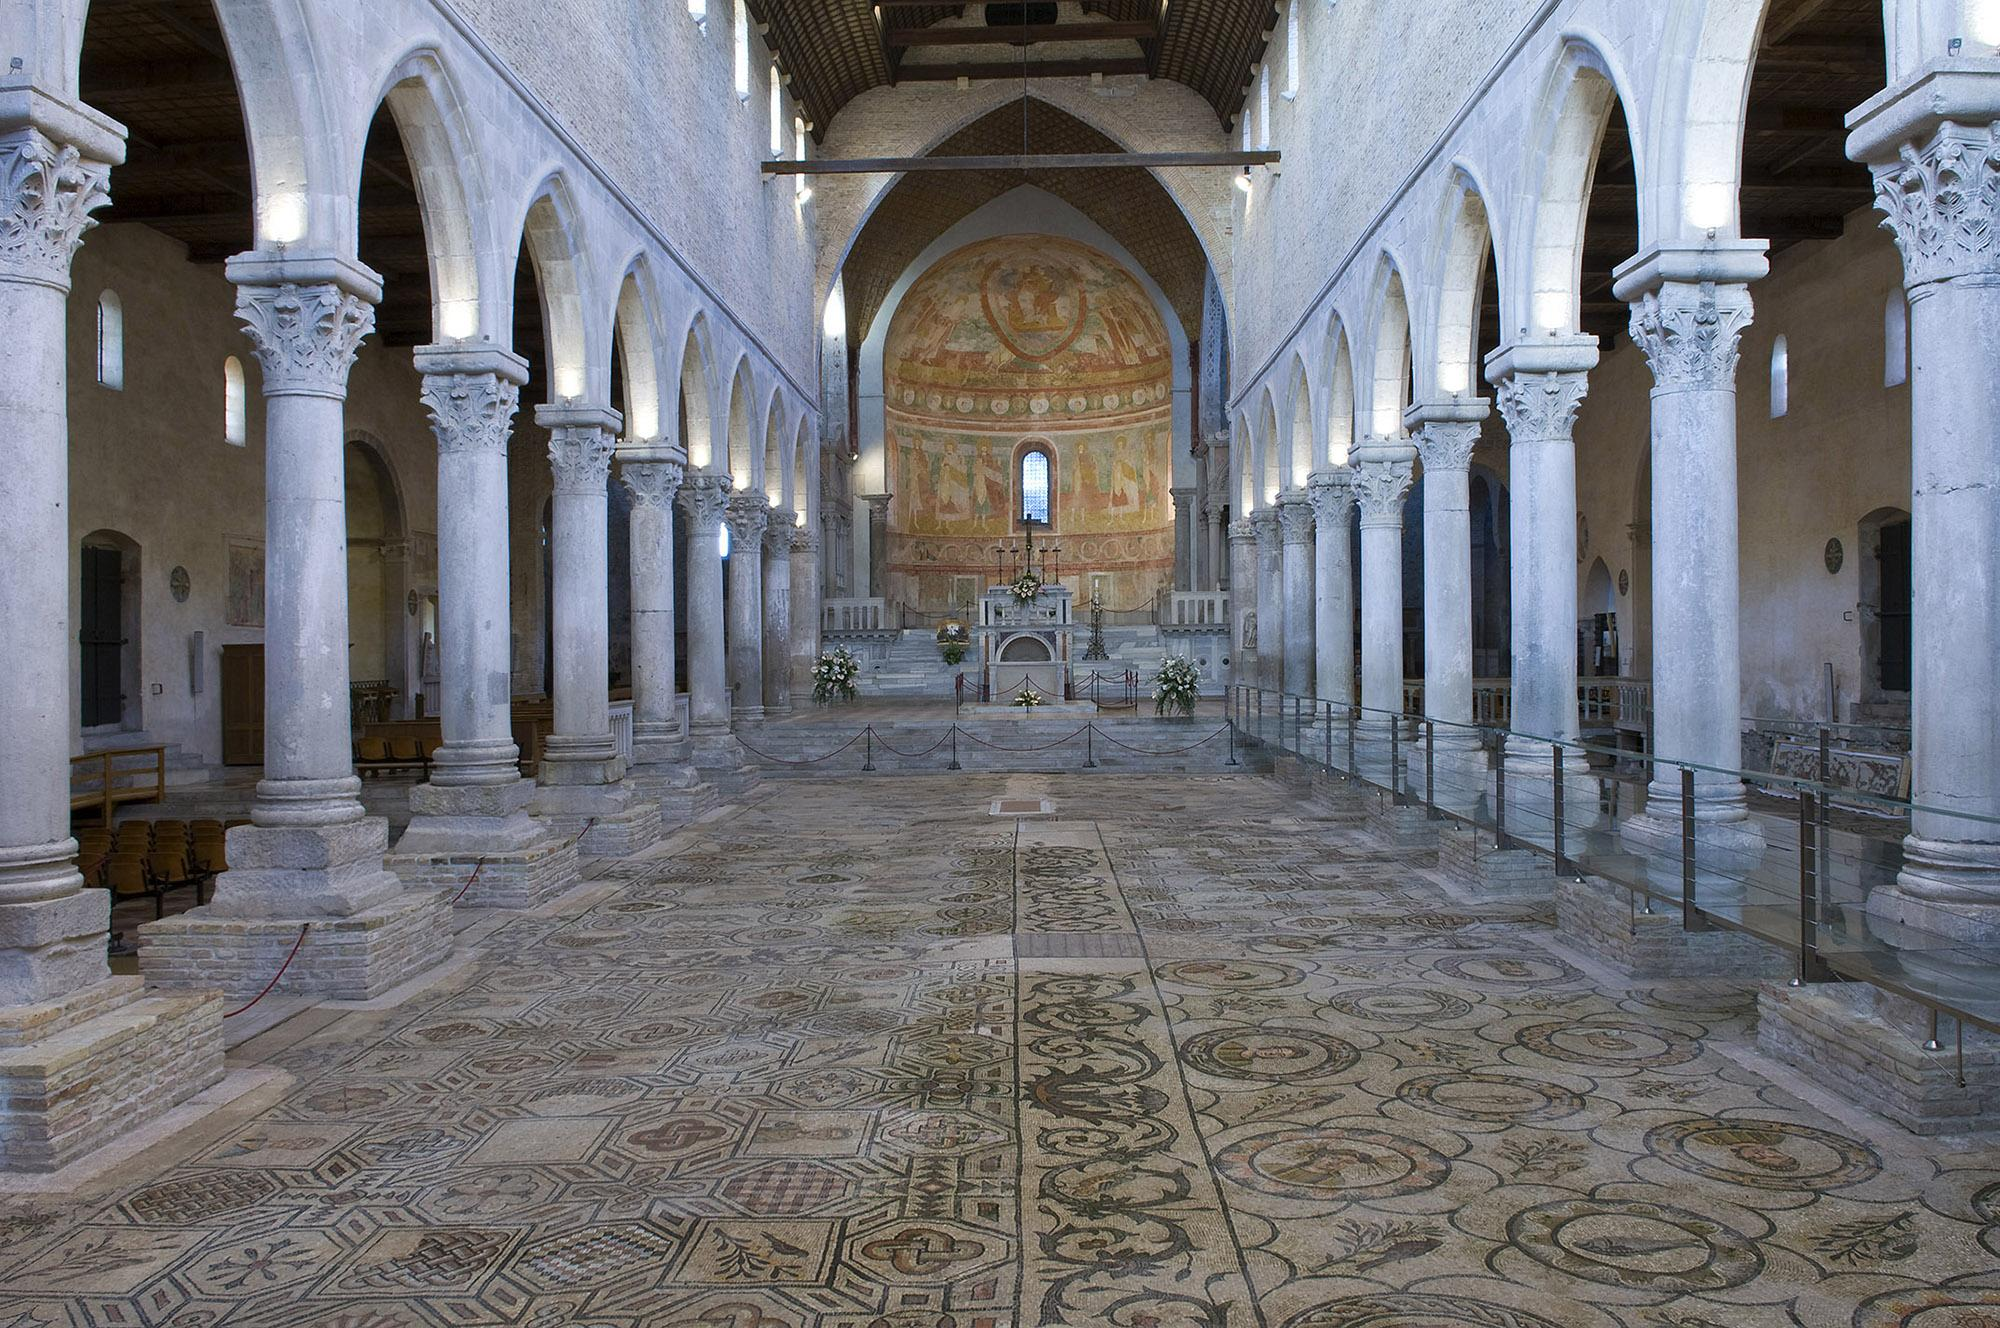 The basilica is the most important Christian landmark in Aquileia and is world renowned for its stunning mosaic from the 4th century AD.- © Gianluca Baronchelli